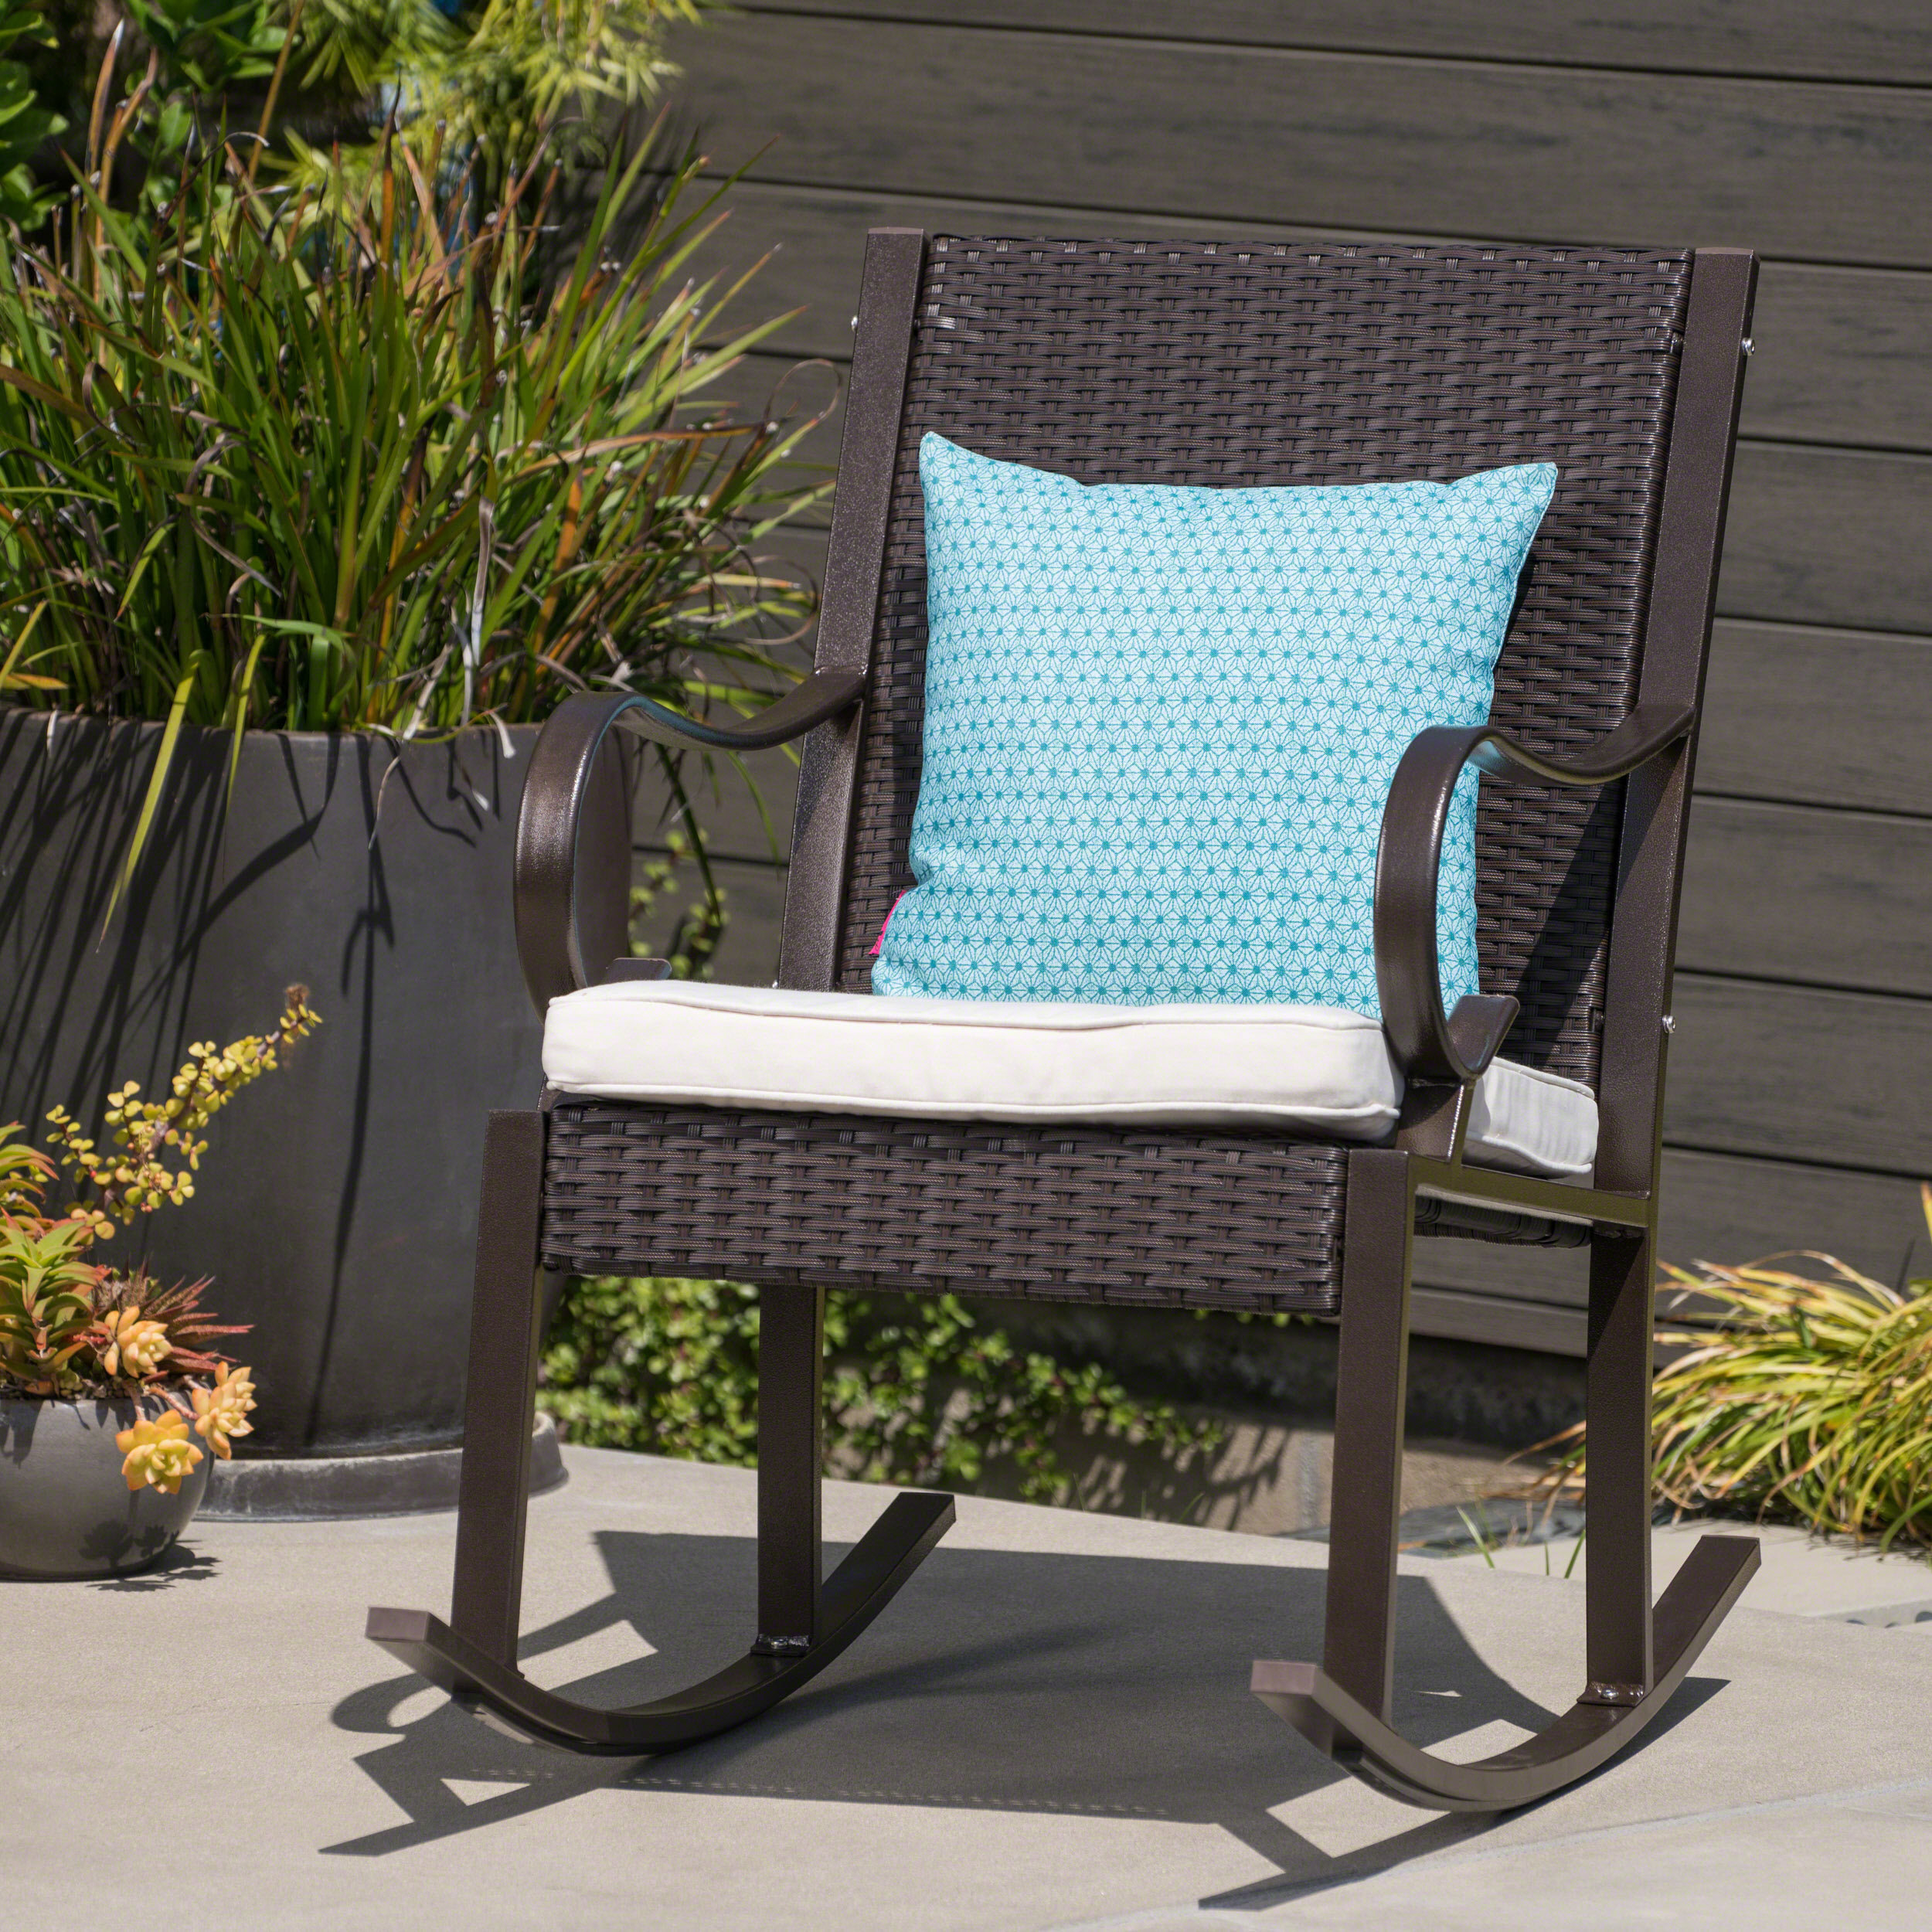 Kampmann Outdoor Wicker Rocking Chair With Cushions With Regard To Rocking Chairs, Cream And Brown (#10 of 20)